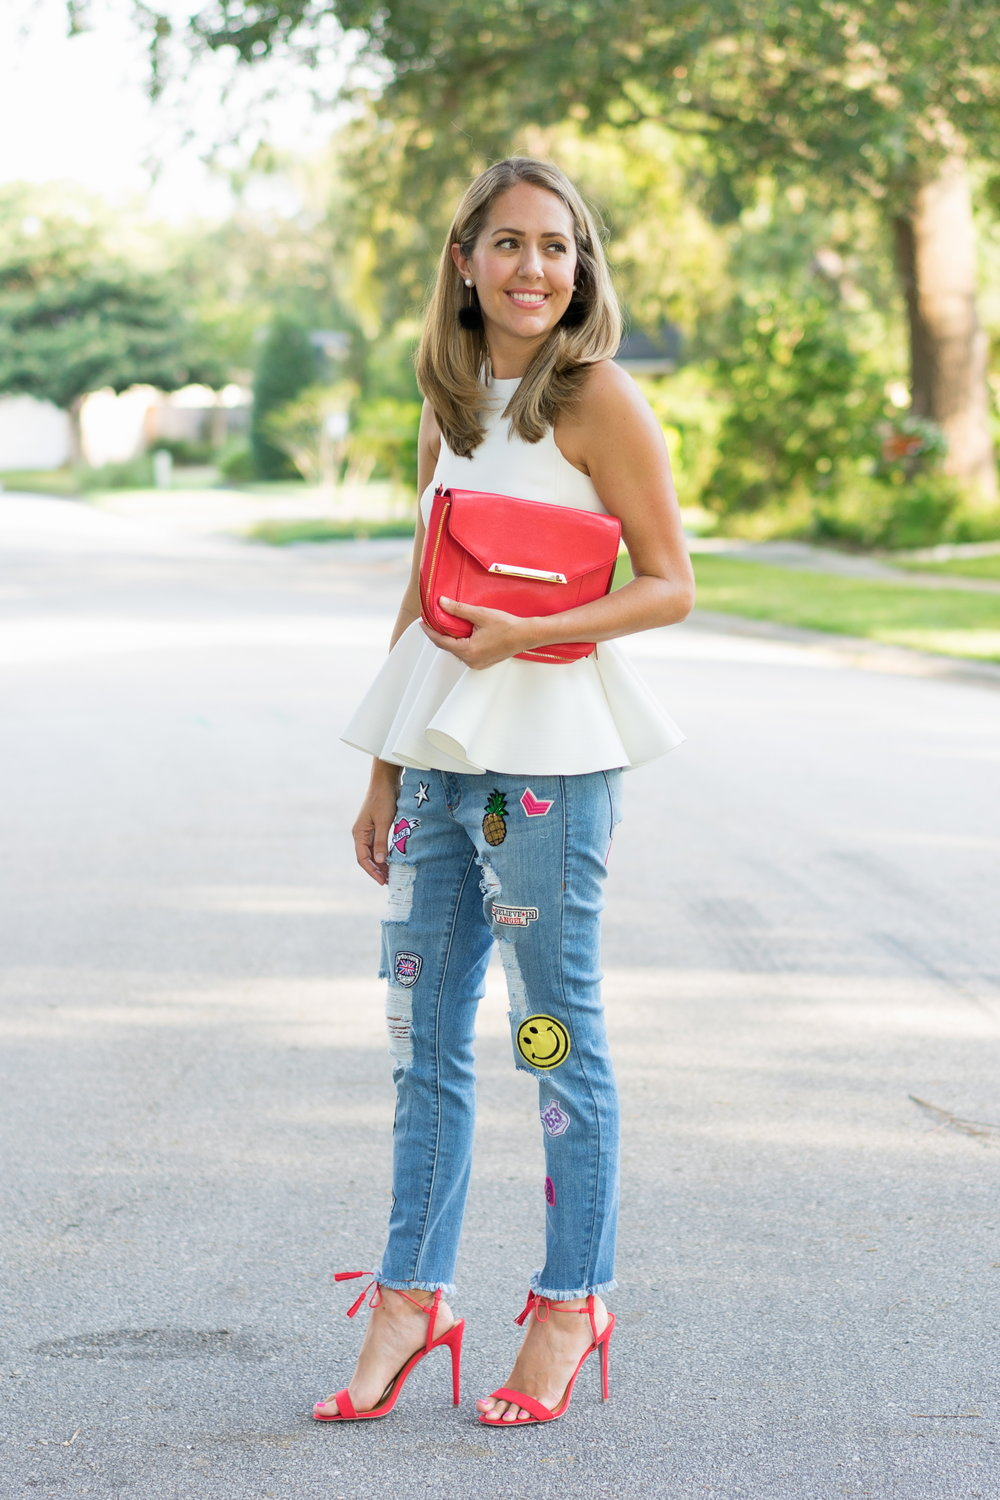 White peplum top with patch jeans and red heels